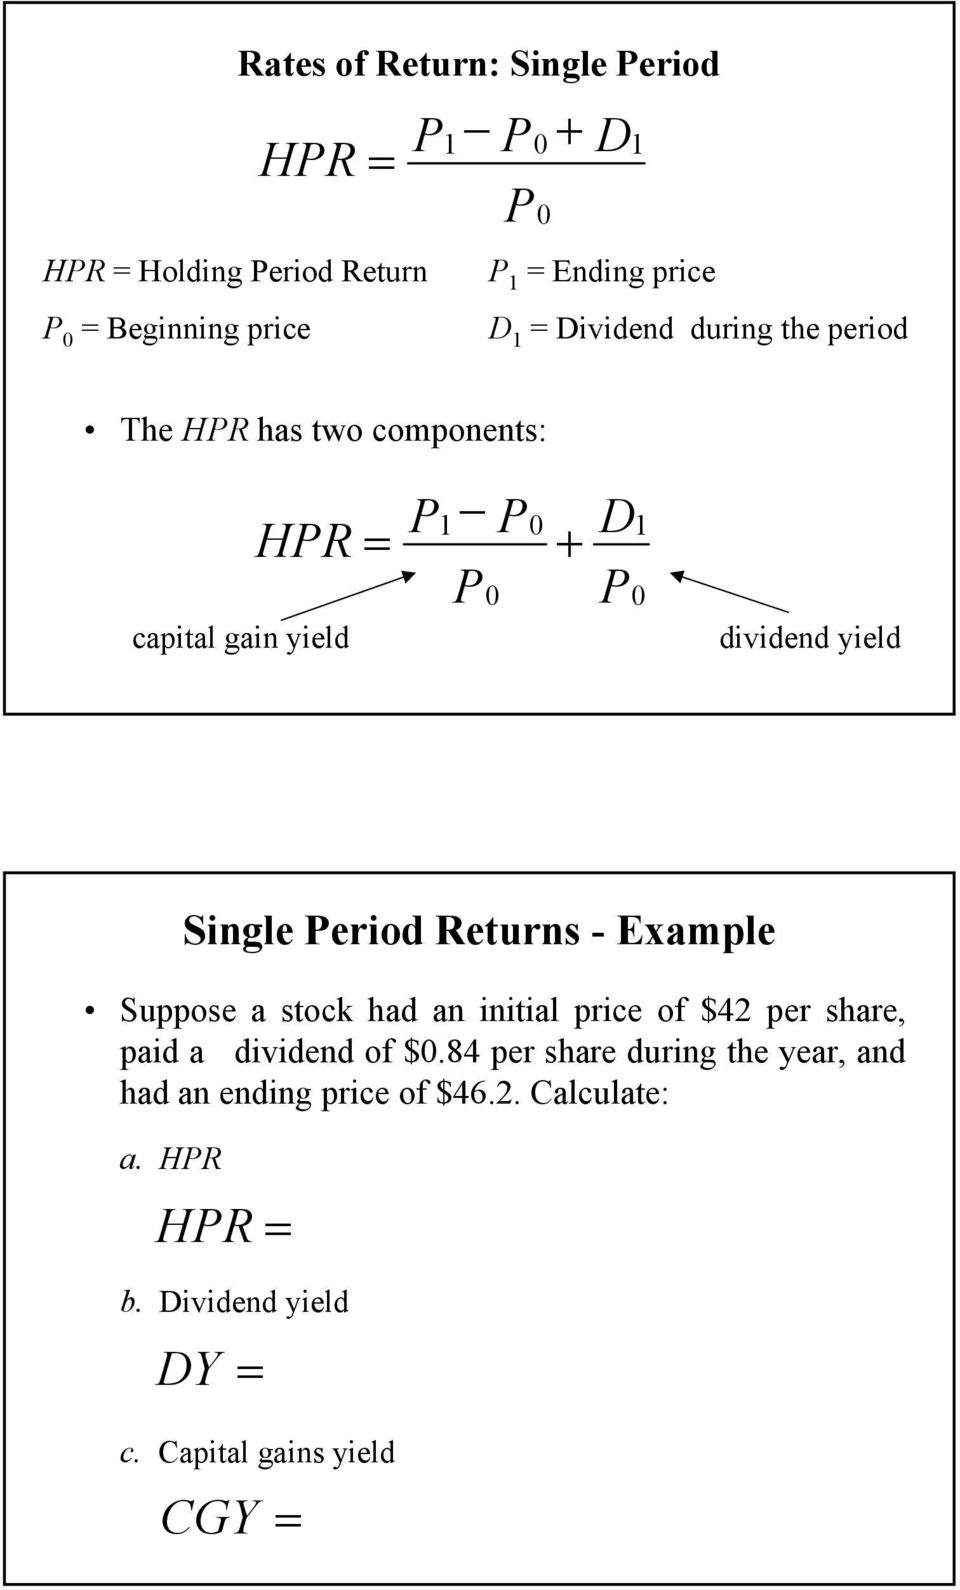 Single Period Returns - Example Suppose a stock had an initial price of $4 per share, paid a dividend of $0.